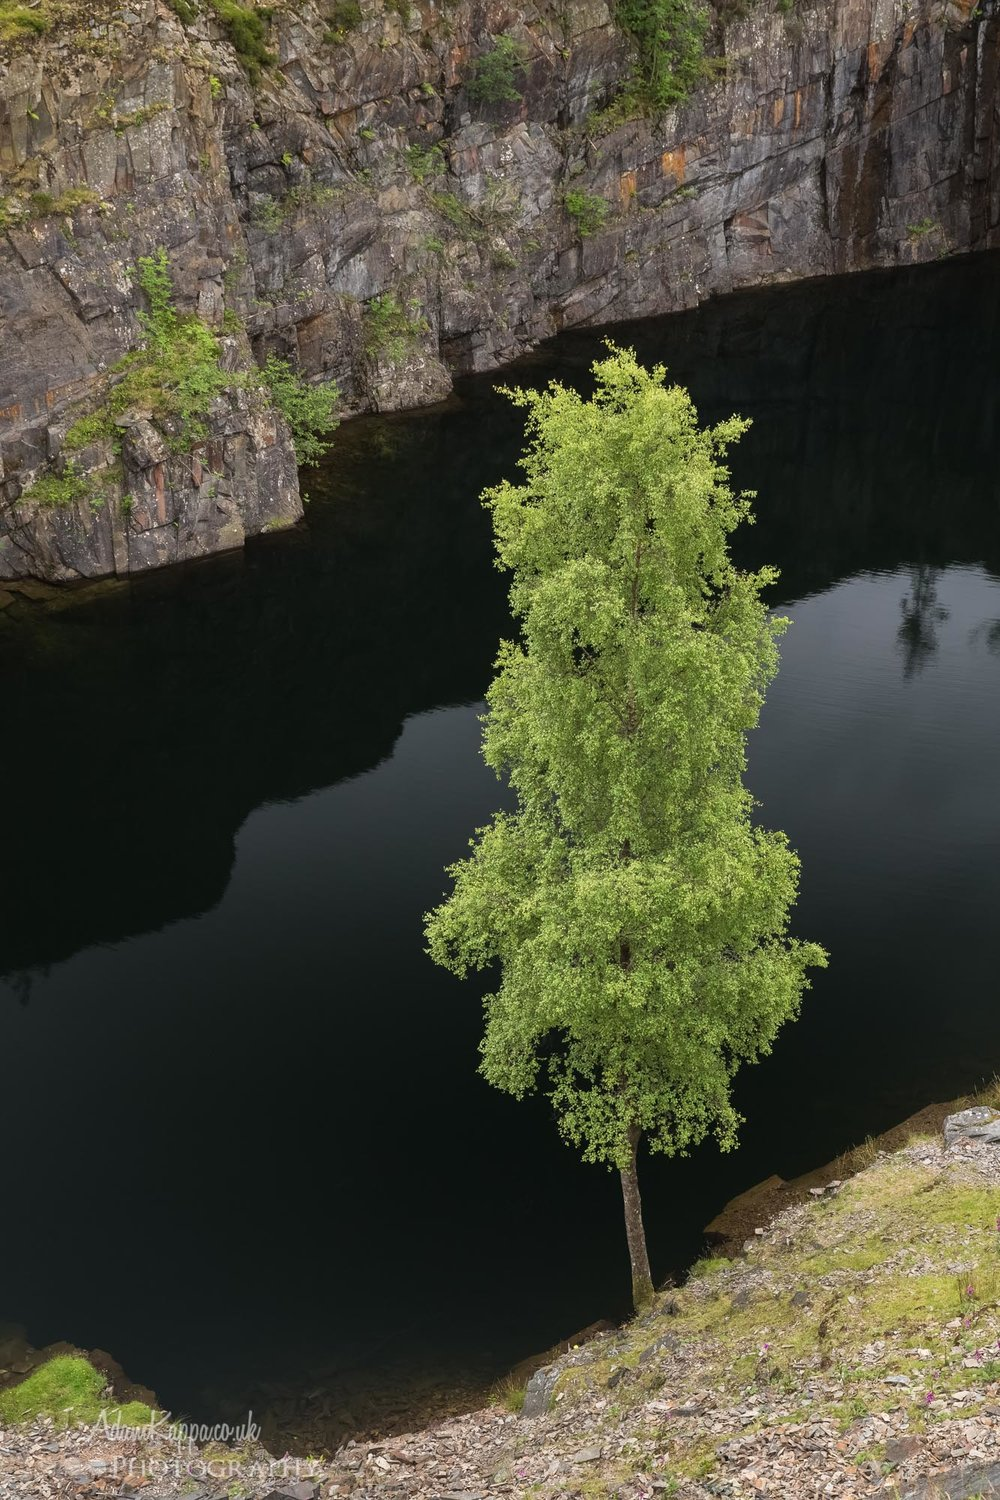 Tree in the quarry - I liked how this green tree stood out against the dark water